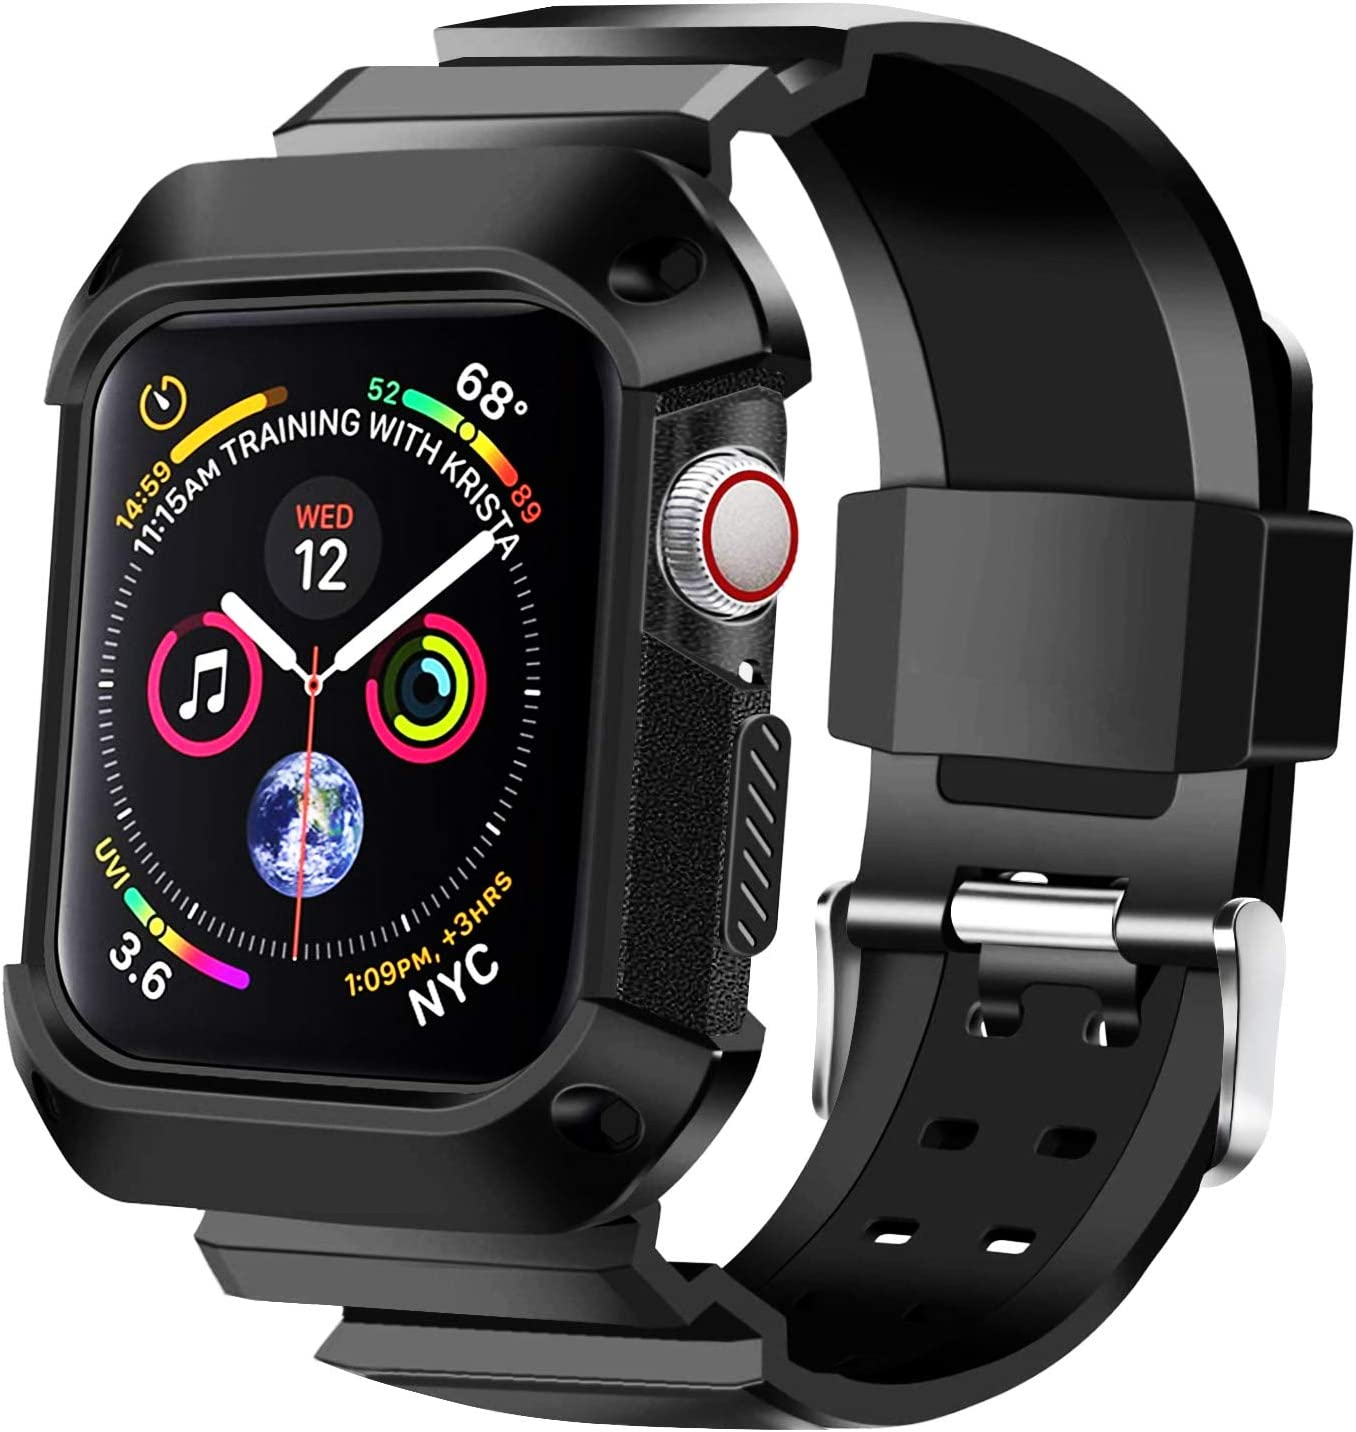 KUMEEK Compatible with Apple Watch Band 44mm 2018 with Case, Shock Resistant Rugged Protective Bumper Case with Soft Silicone Sport Strap for Apple Watch Series 4 44mm - Black